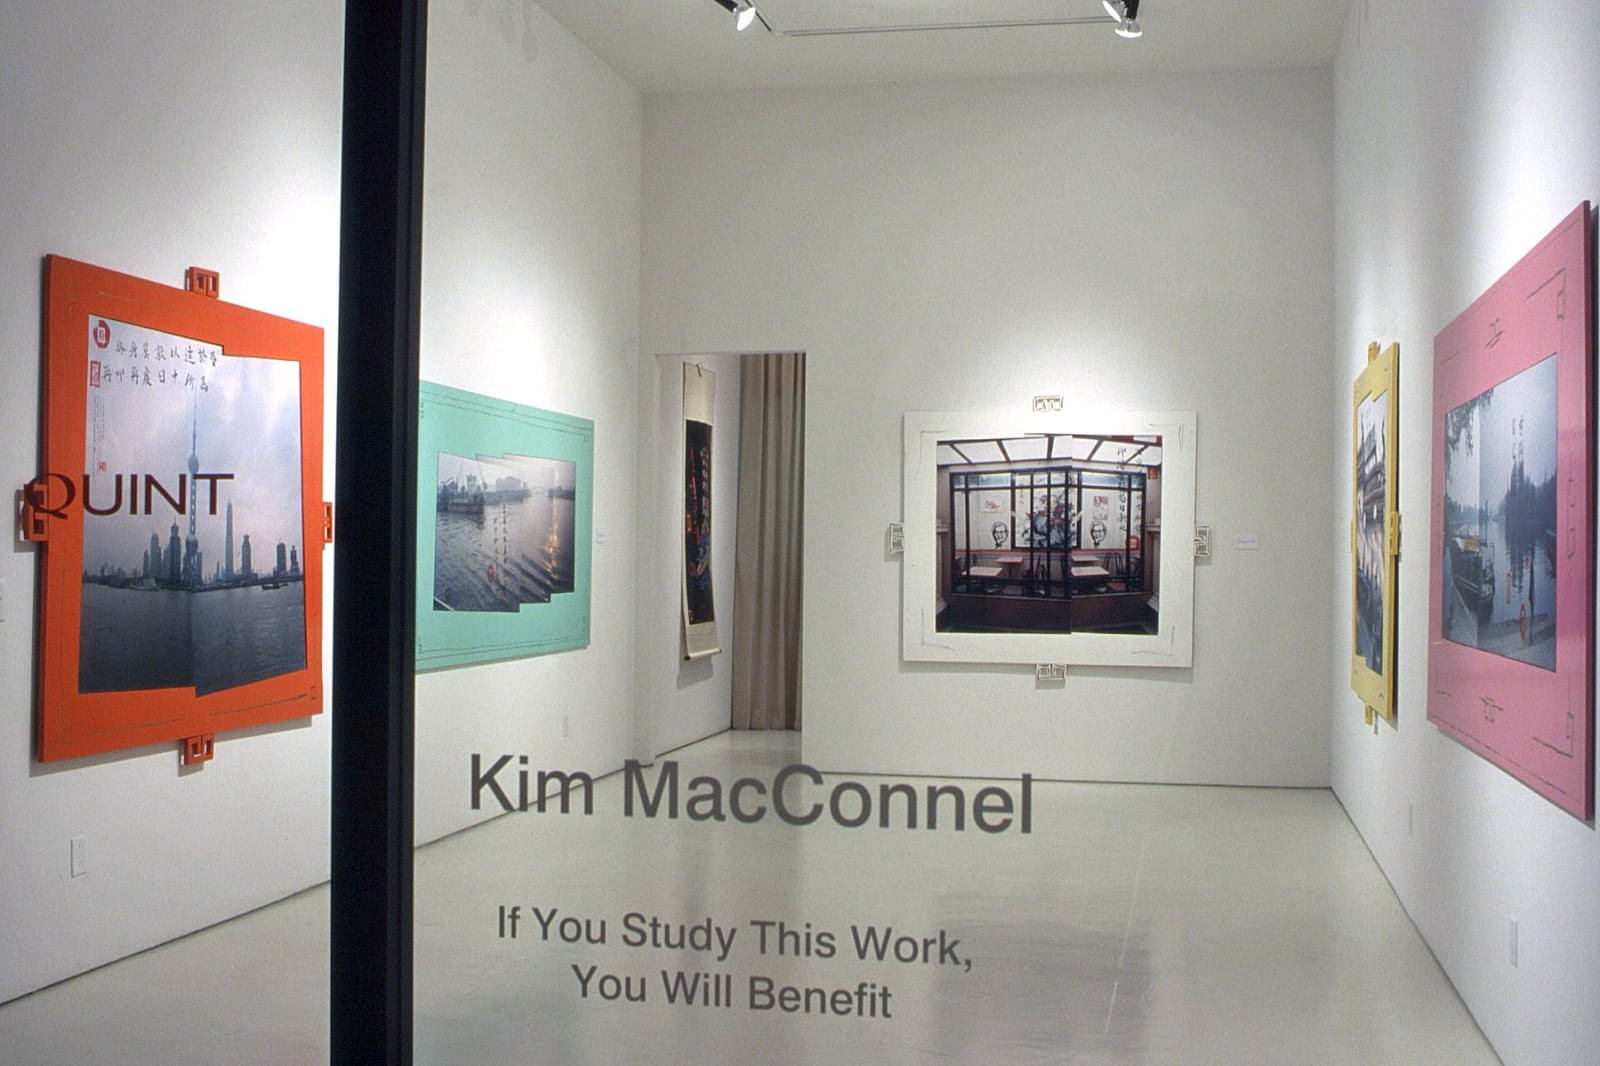 Kim Macconnel | If You Study This Work, You Will Benefit